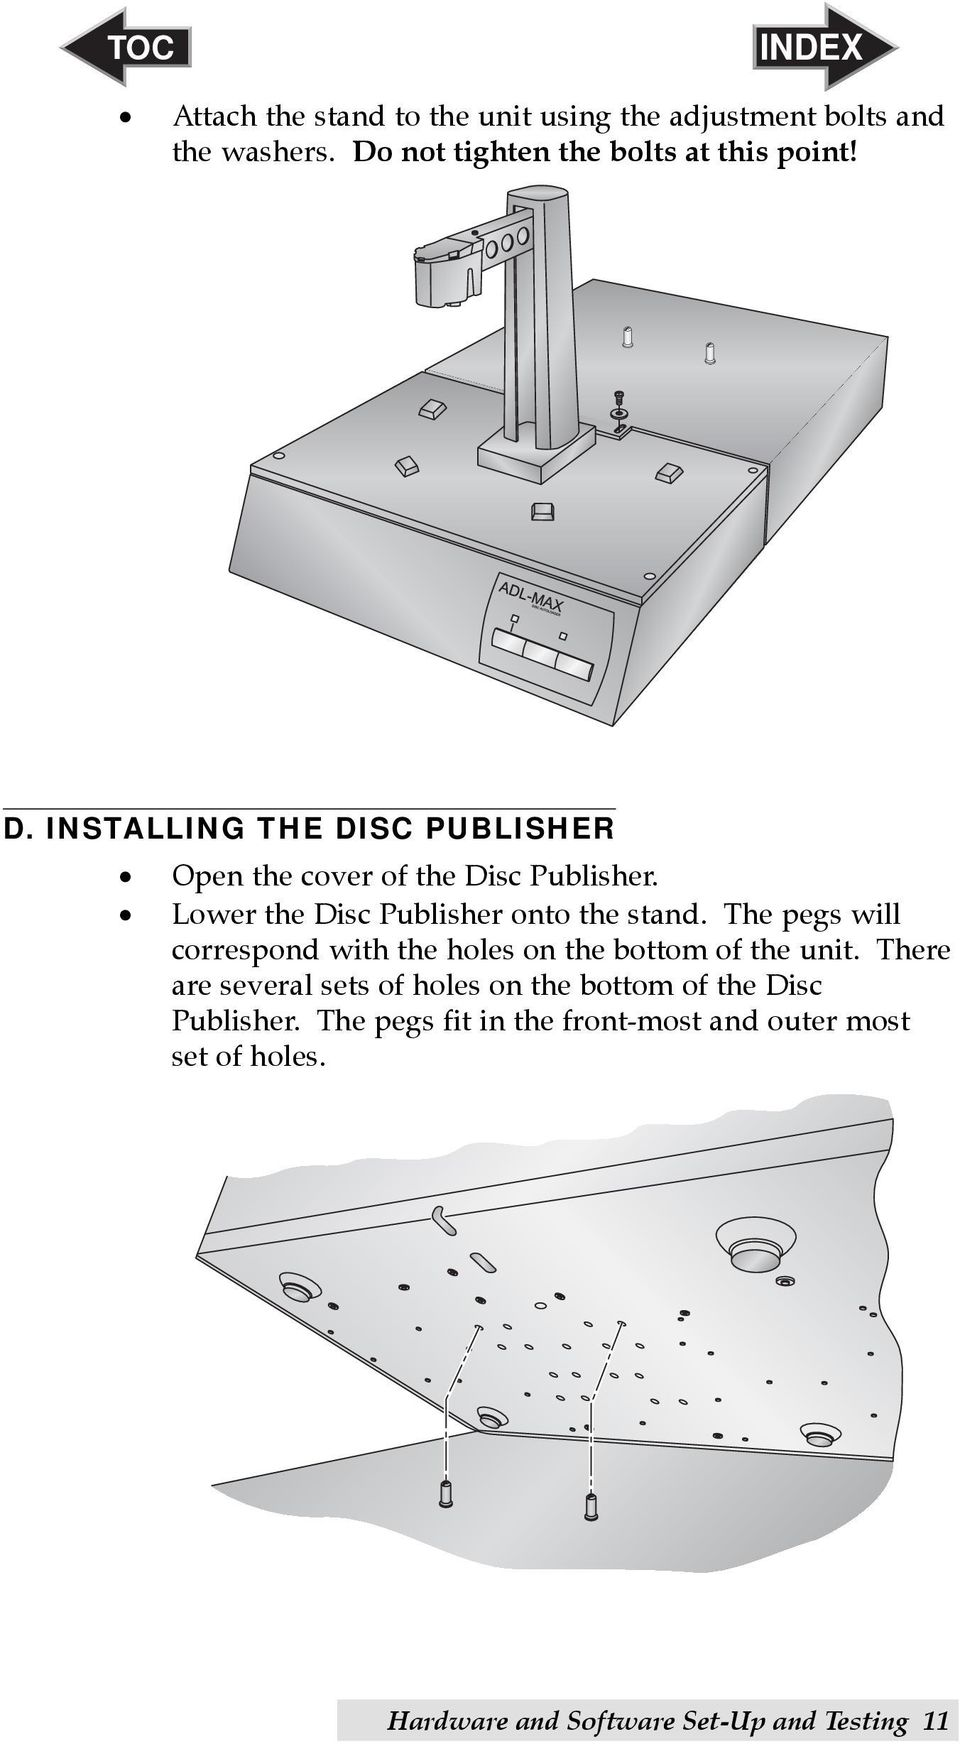 Lower the Disc Publisher onto the stand. The pegs will correspond with the holes on the bottom of the unit.